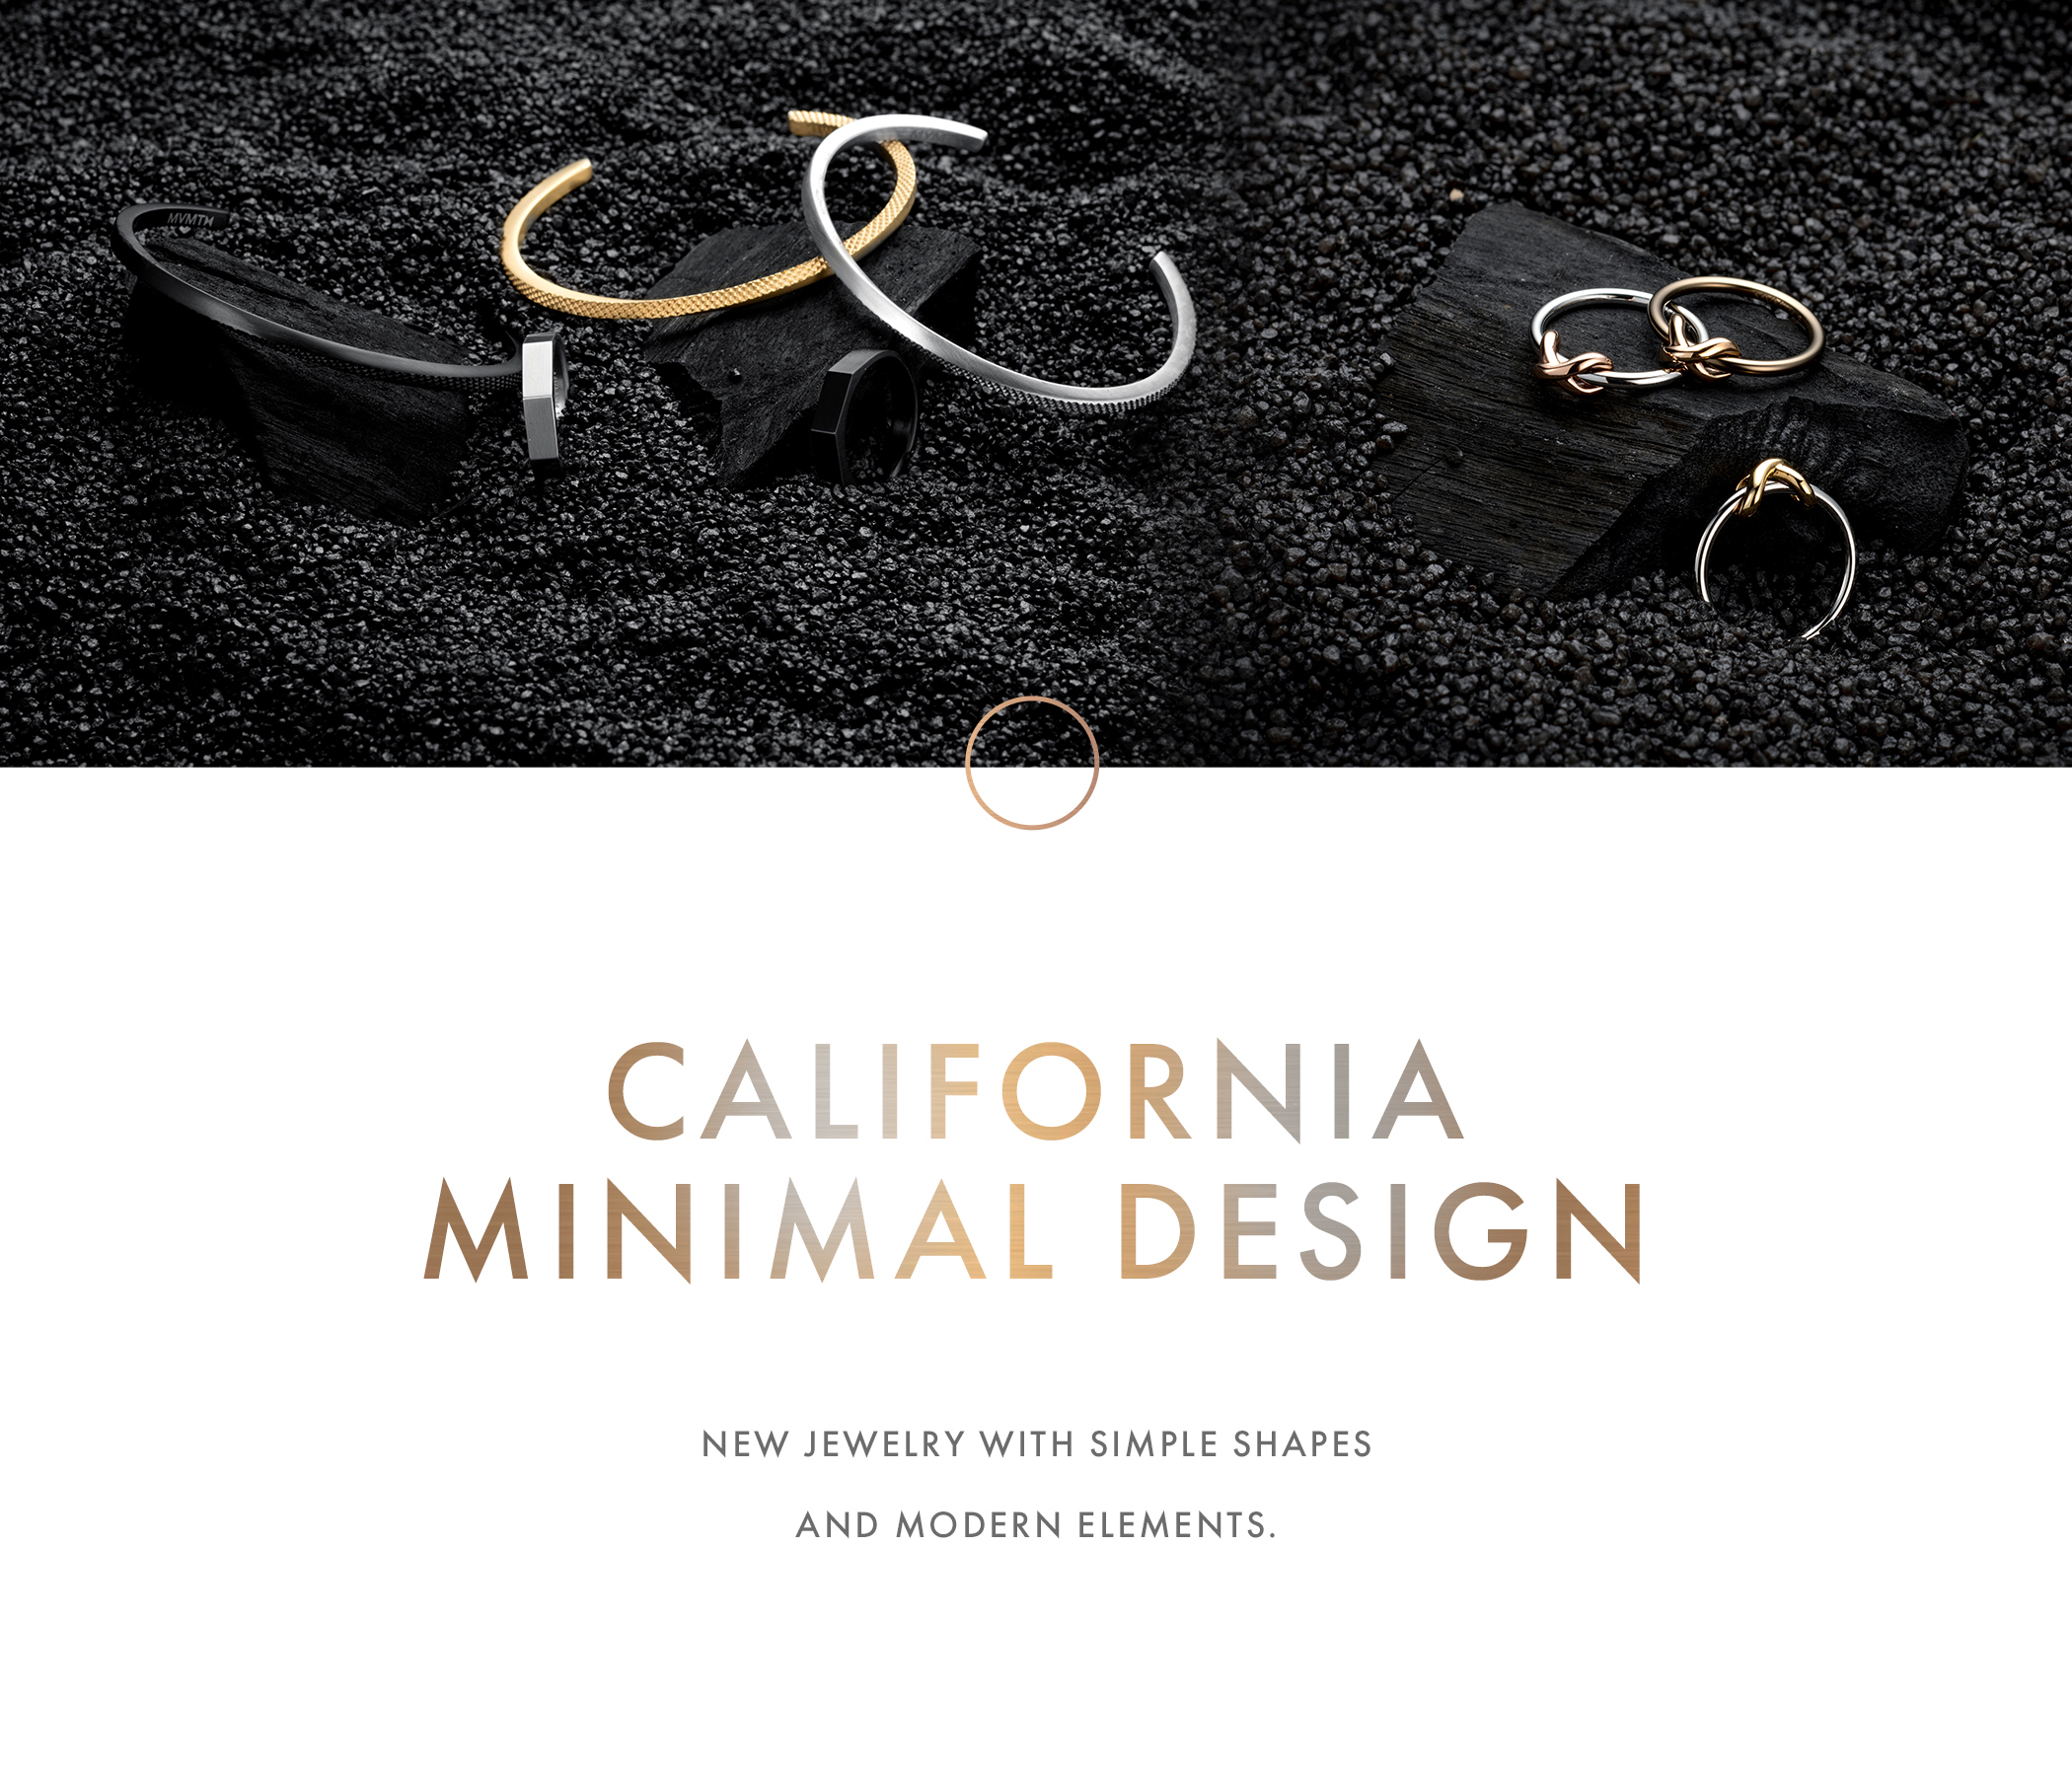 California Minimal Design. New Jewelry with simple shapes and modern elements.